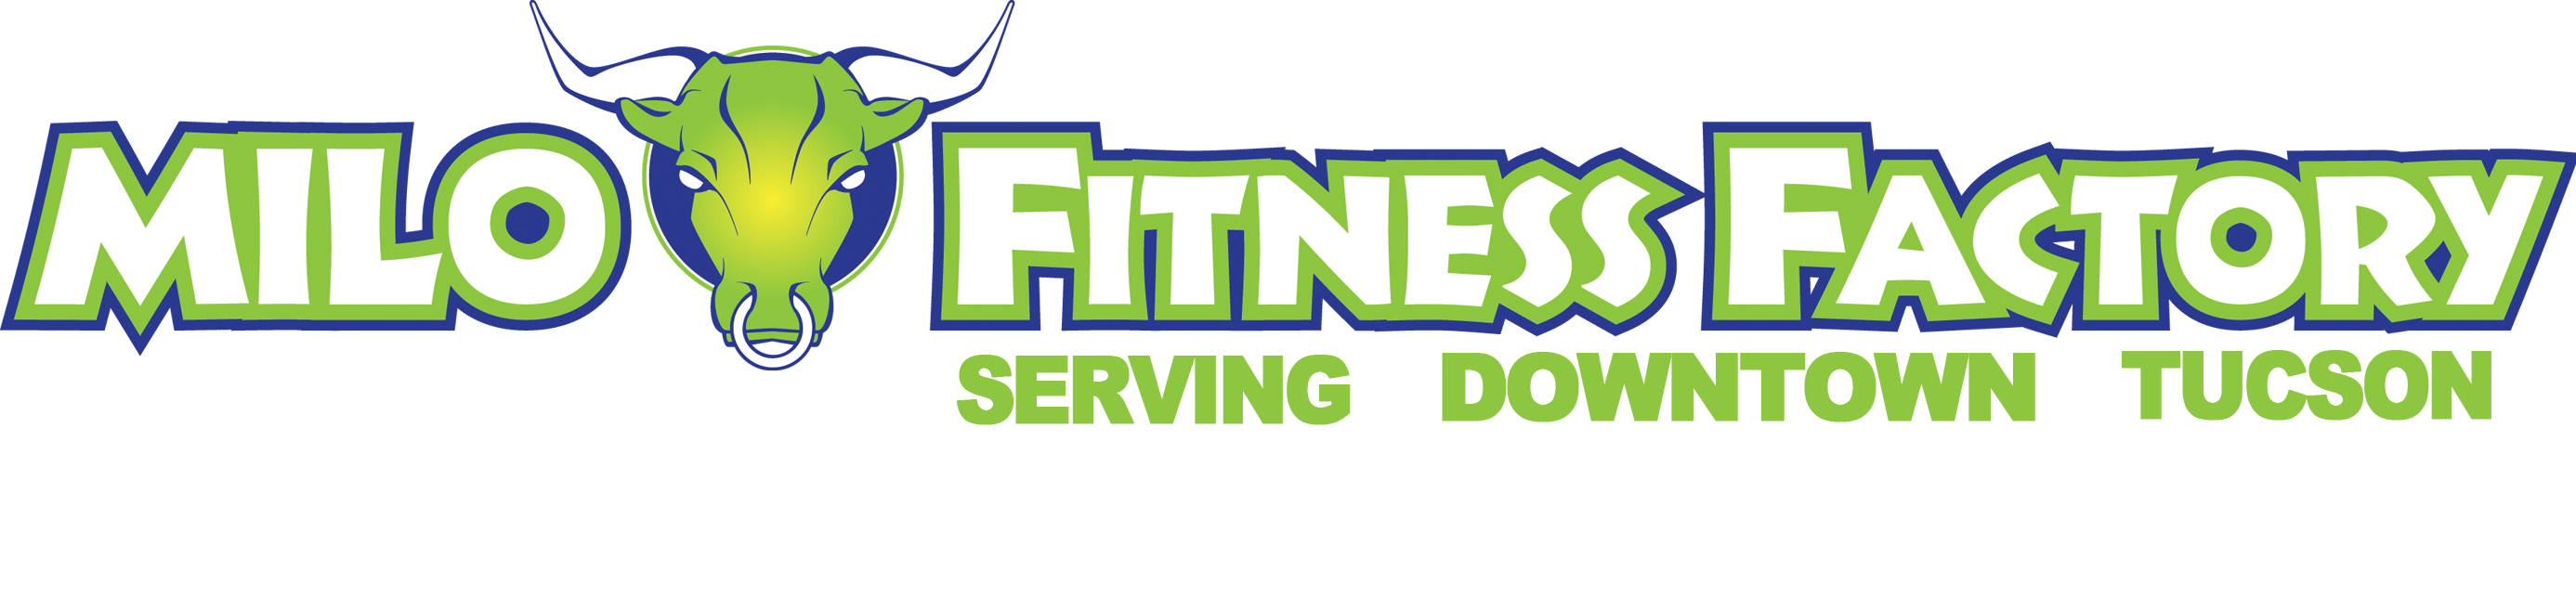 Be your own machine milo fitness factory